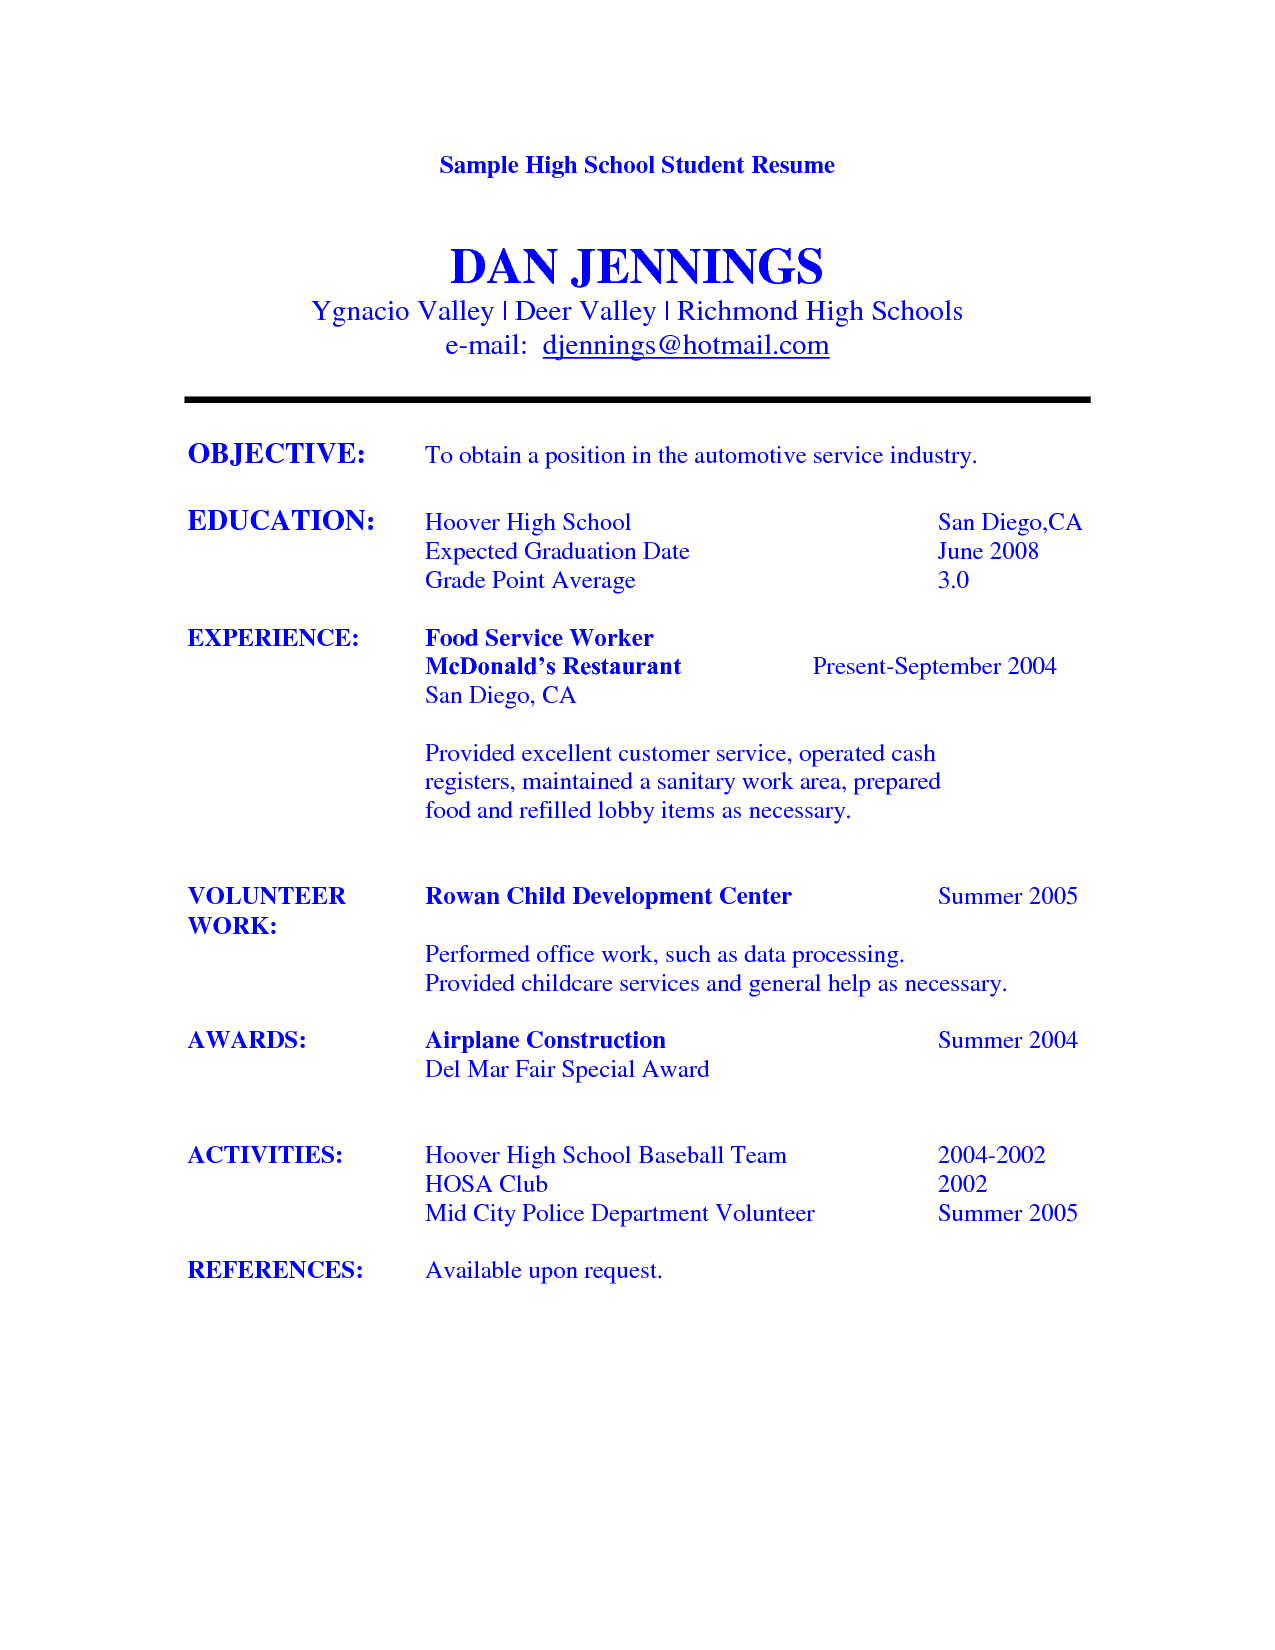 Resume Example For High School Student Sample Resumes    Http://www.resumecareer  High School Student Resume Format